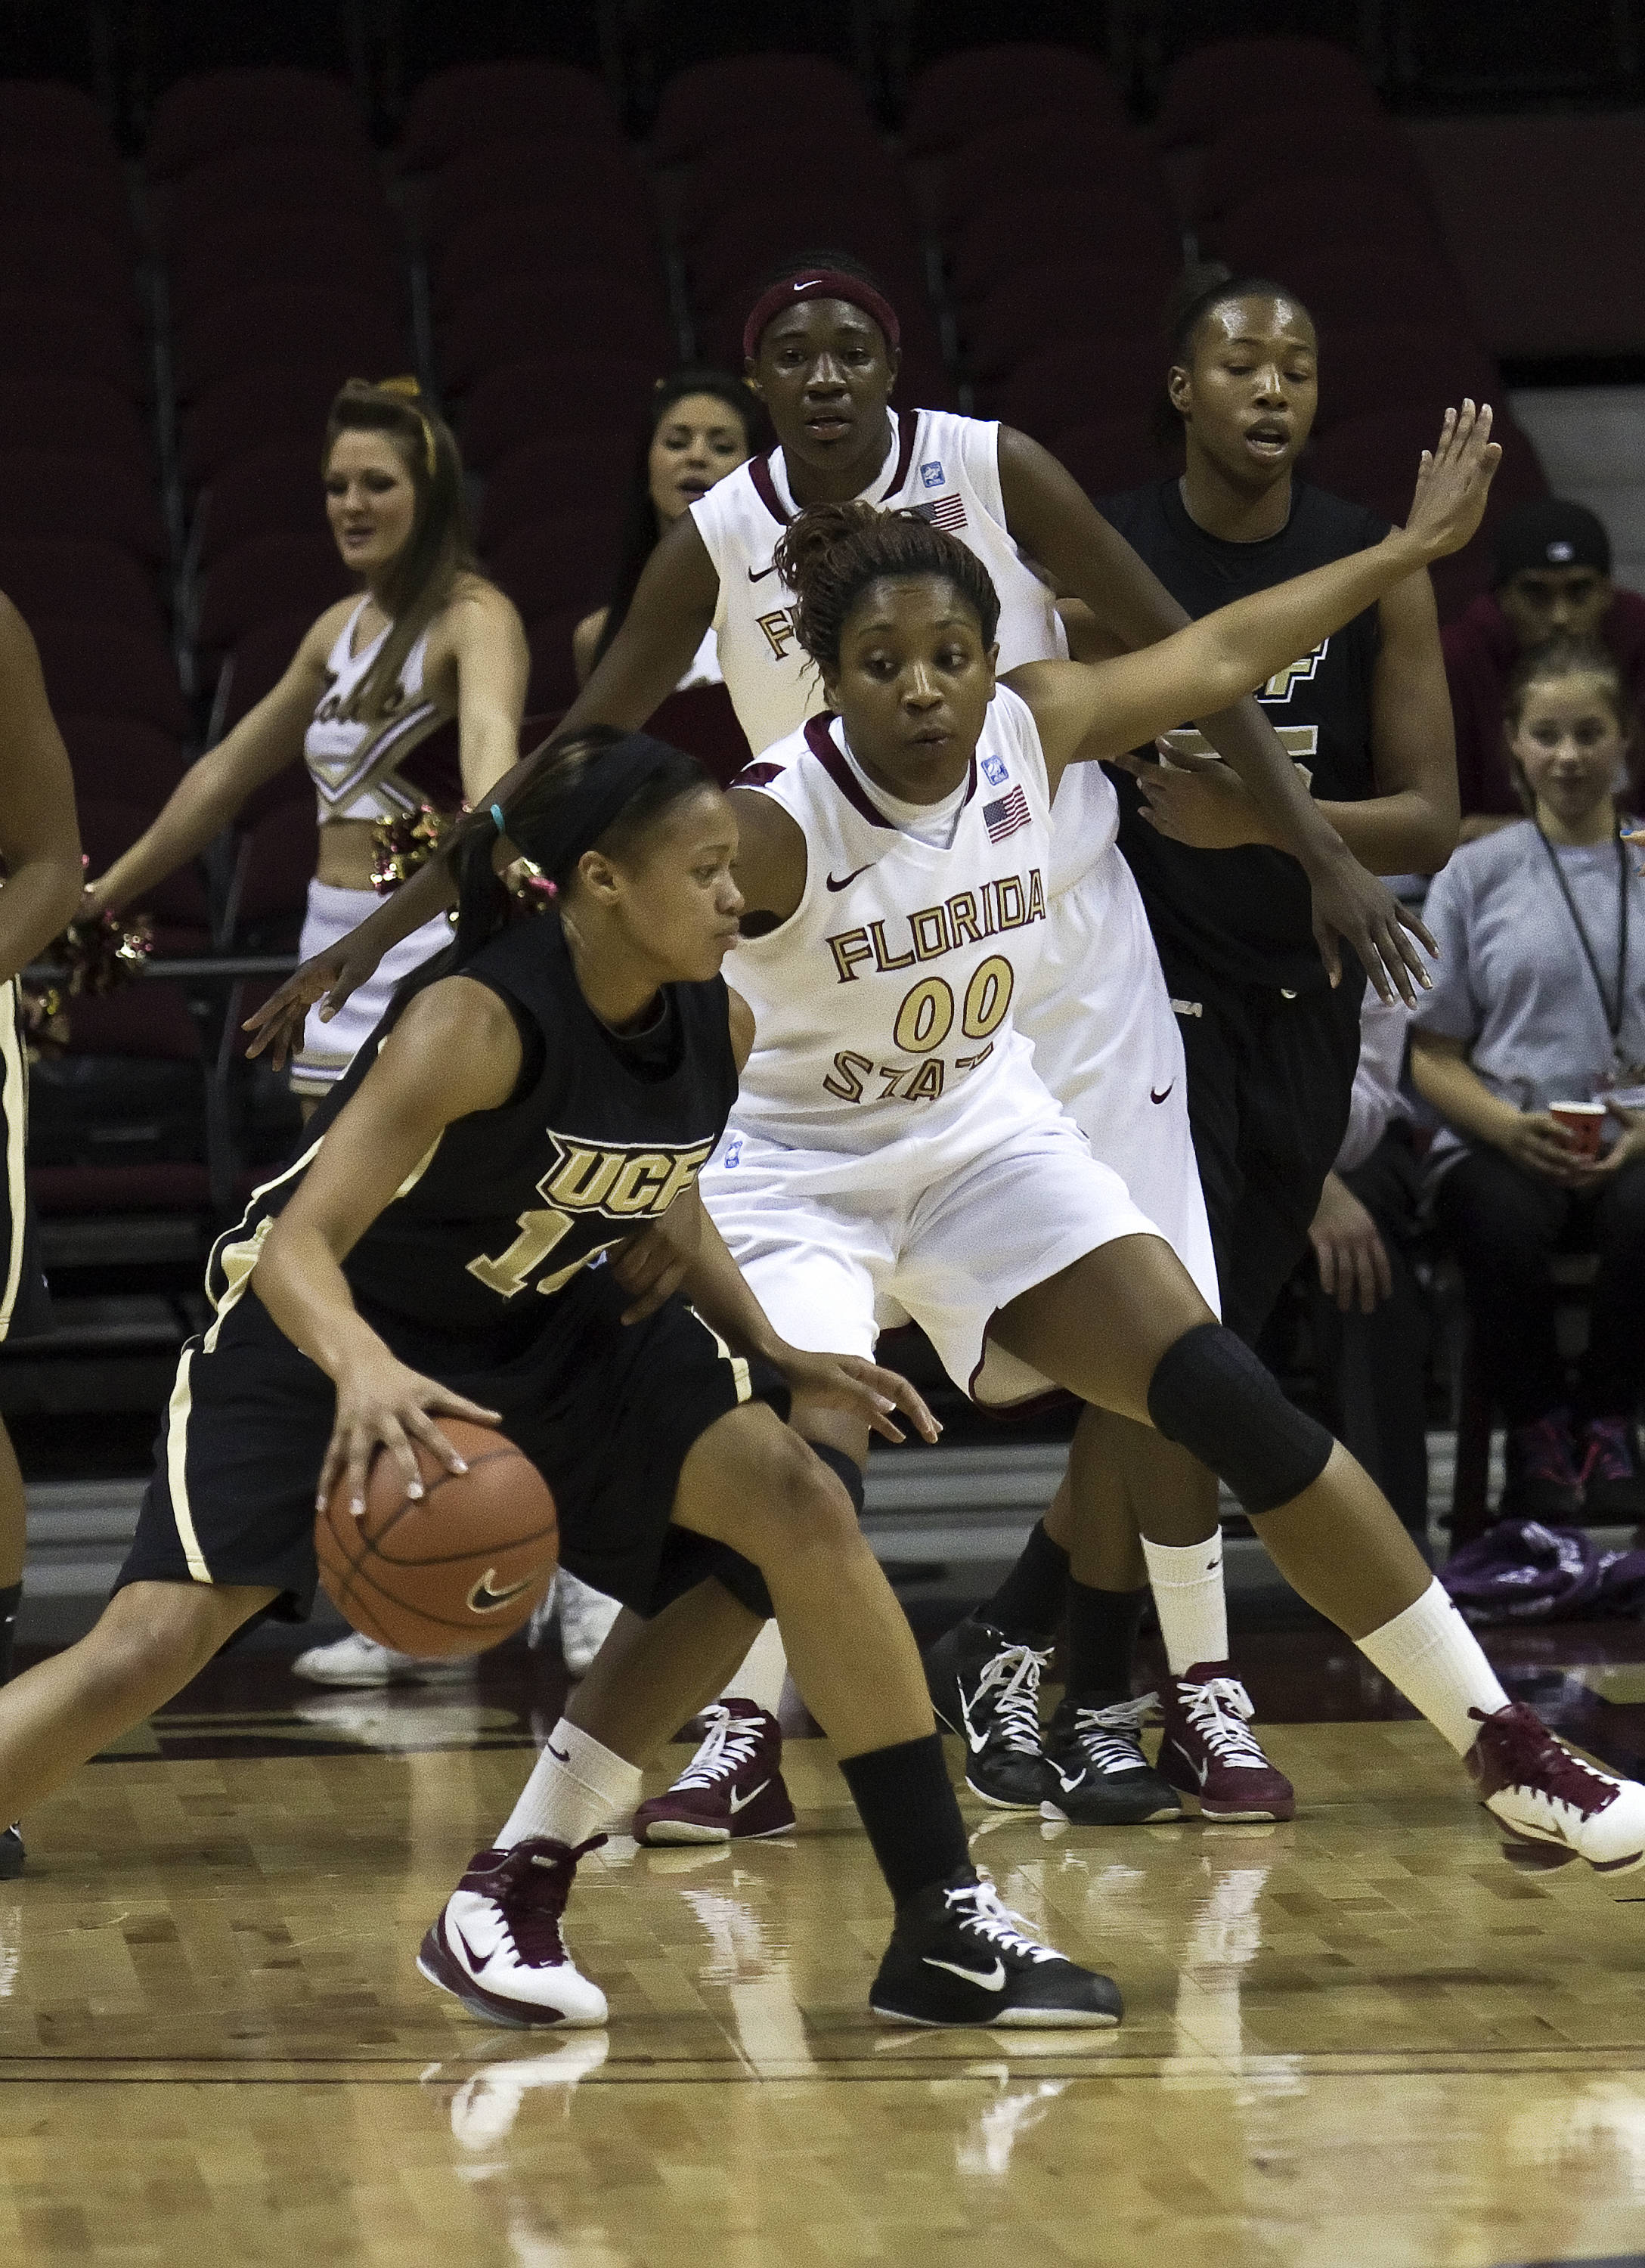 FSU vs UCF - 12/15/10 - Chasity Clayton (00)#$%^Photo by Steve Musco